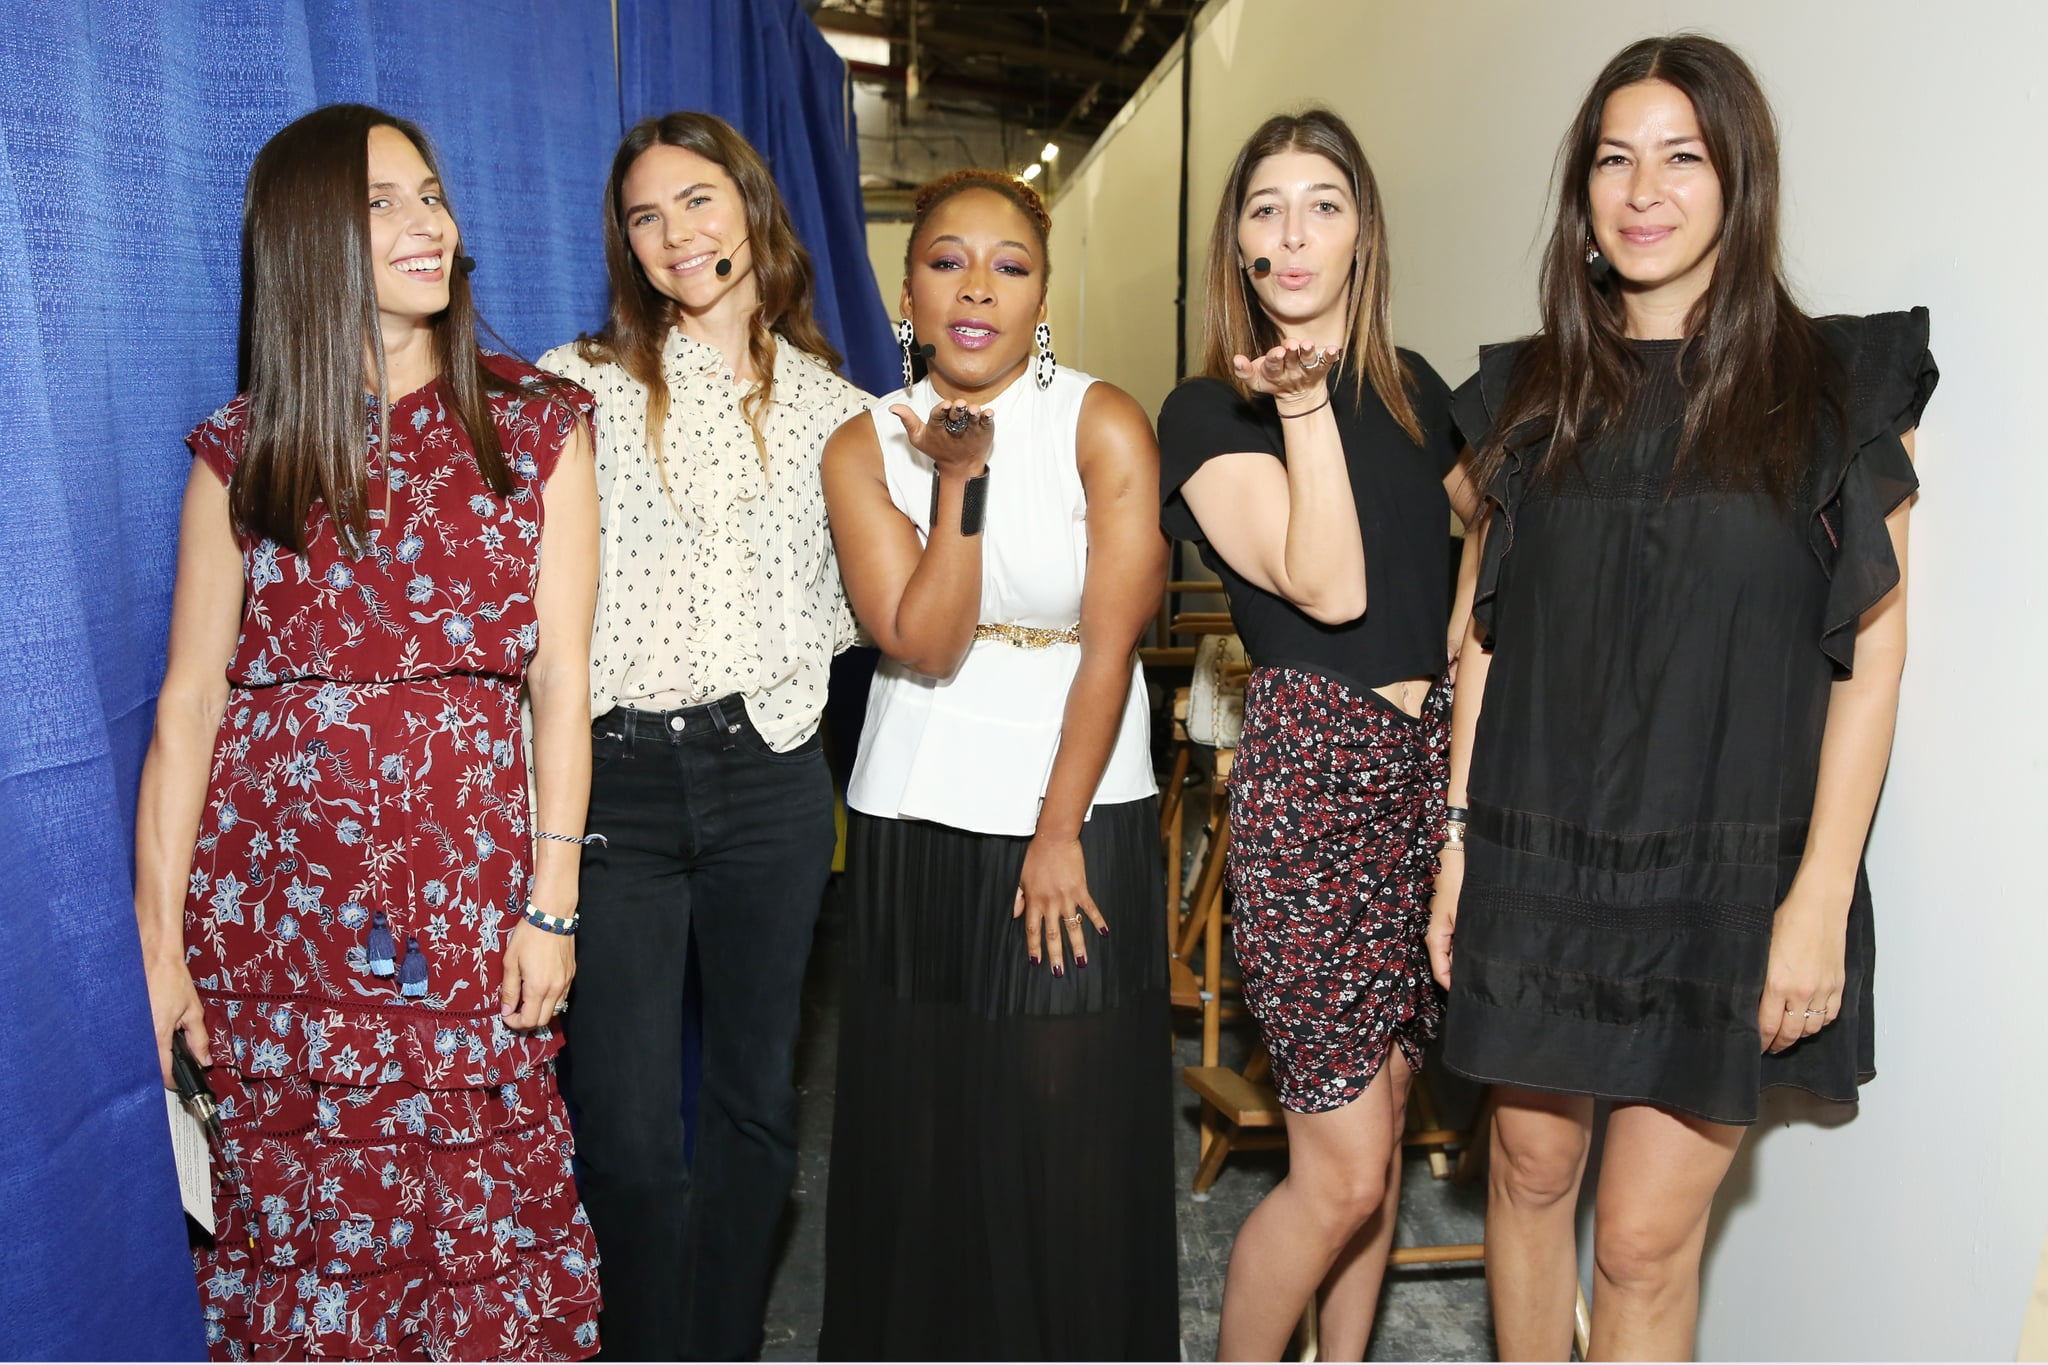 Pictured: Dana Avidan Cohn, Amanda Chantal Bacon, Ukonwa Ojo, Stephanie Mark, and Rebecca Minkoff